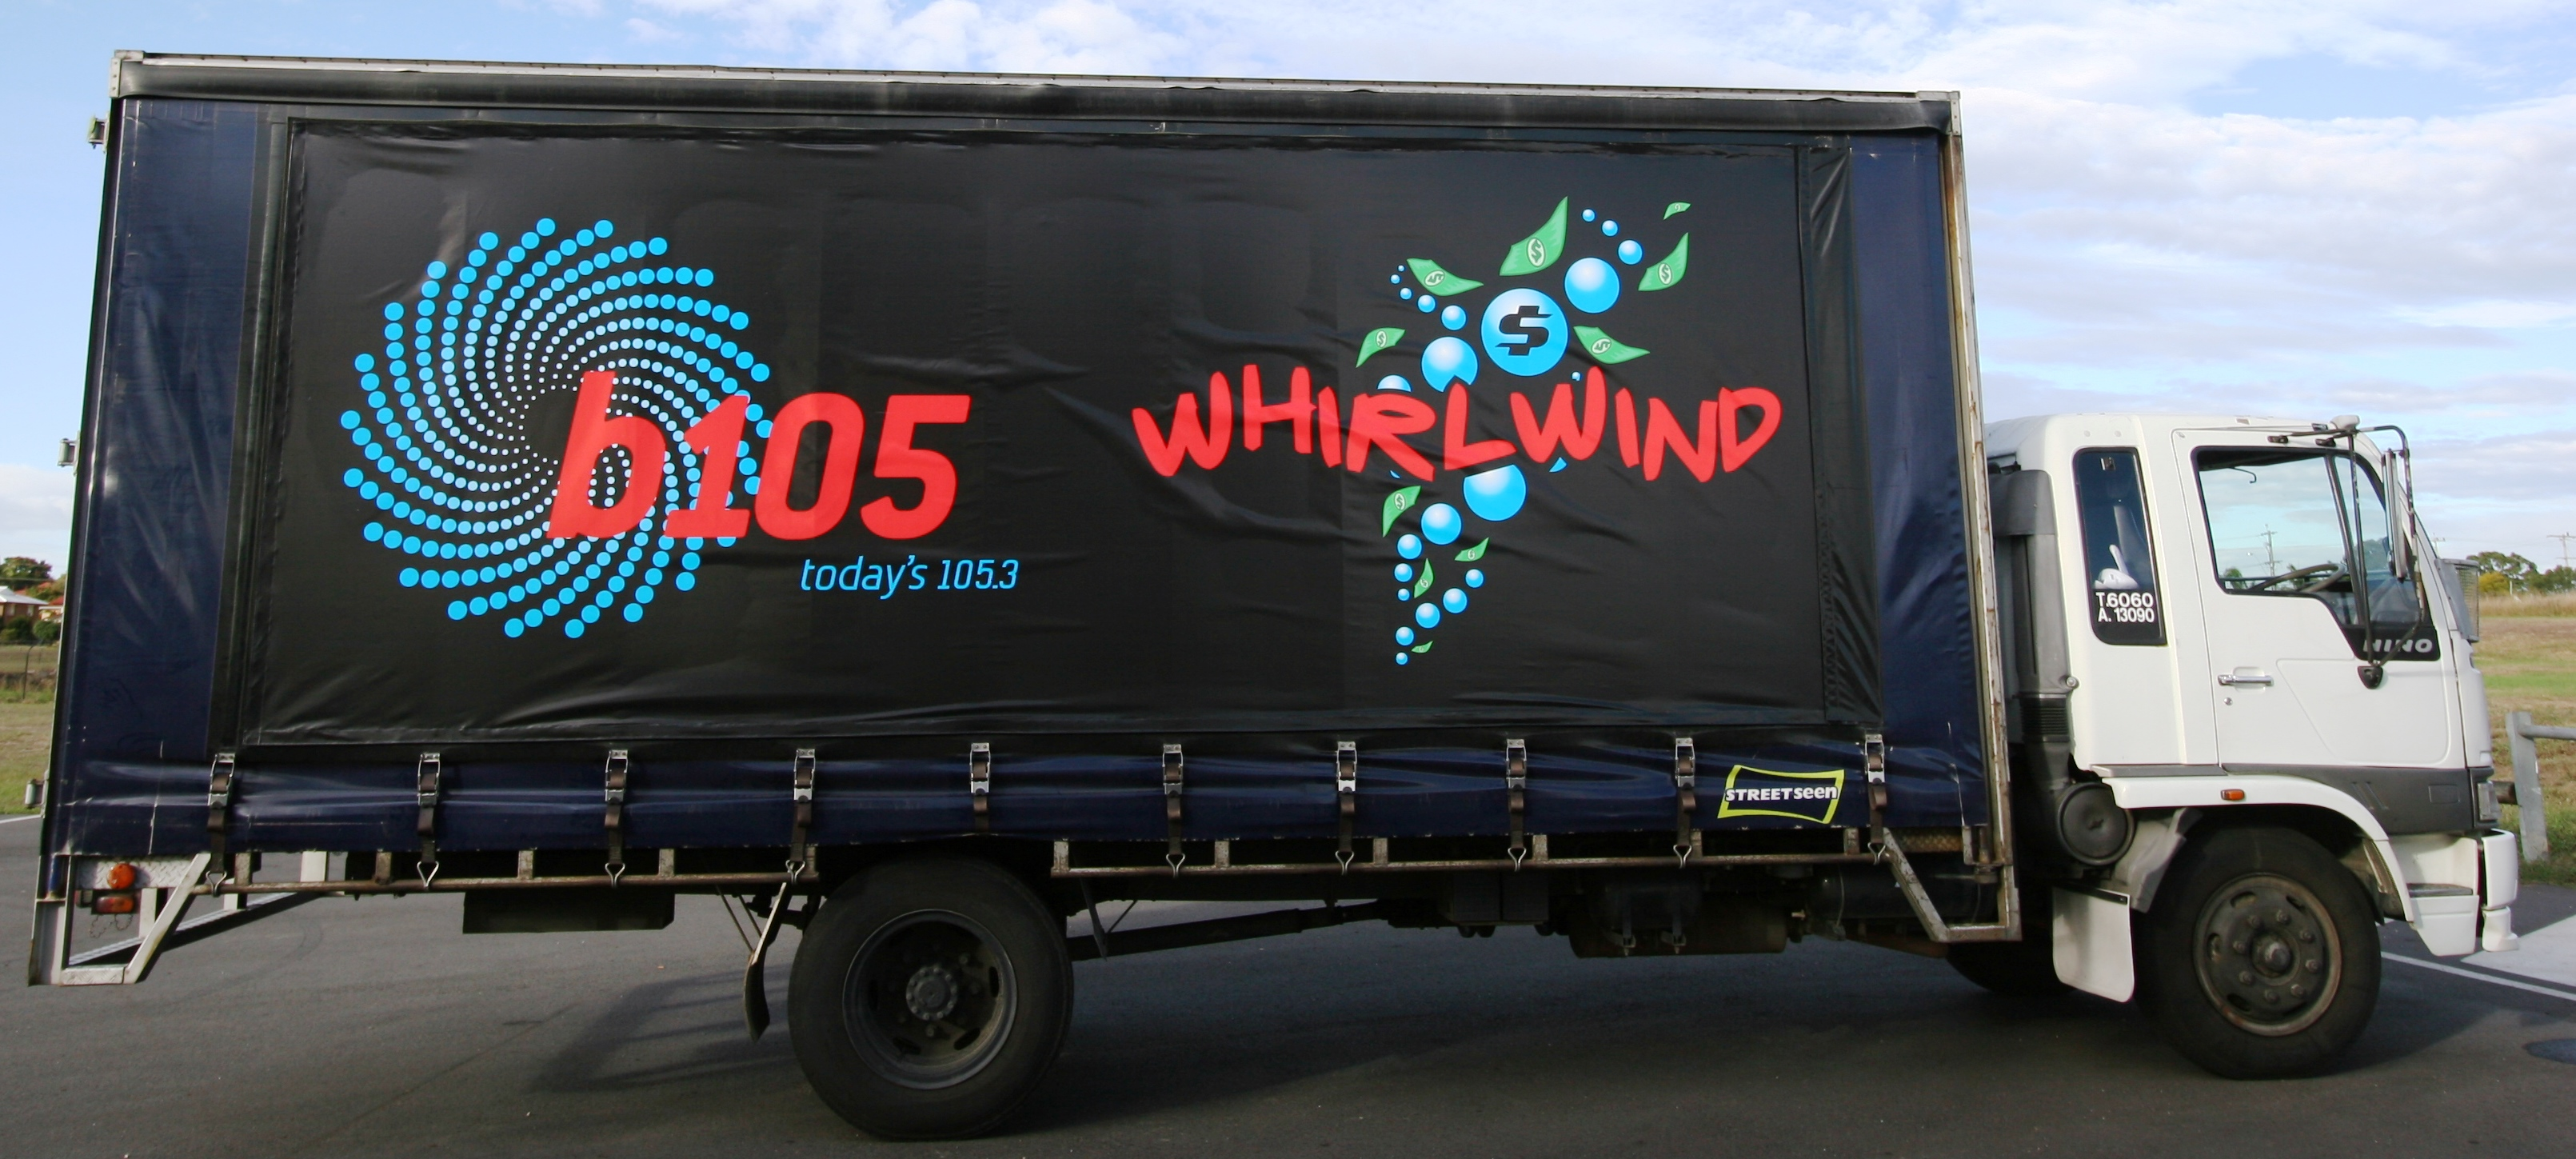 Truck advertising. B105 Whirlwind rigid tautliner. Brisbane. TruckSide. StreetSeen curtains. Austereo.